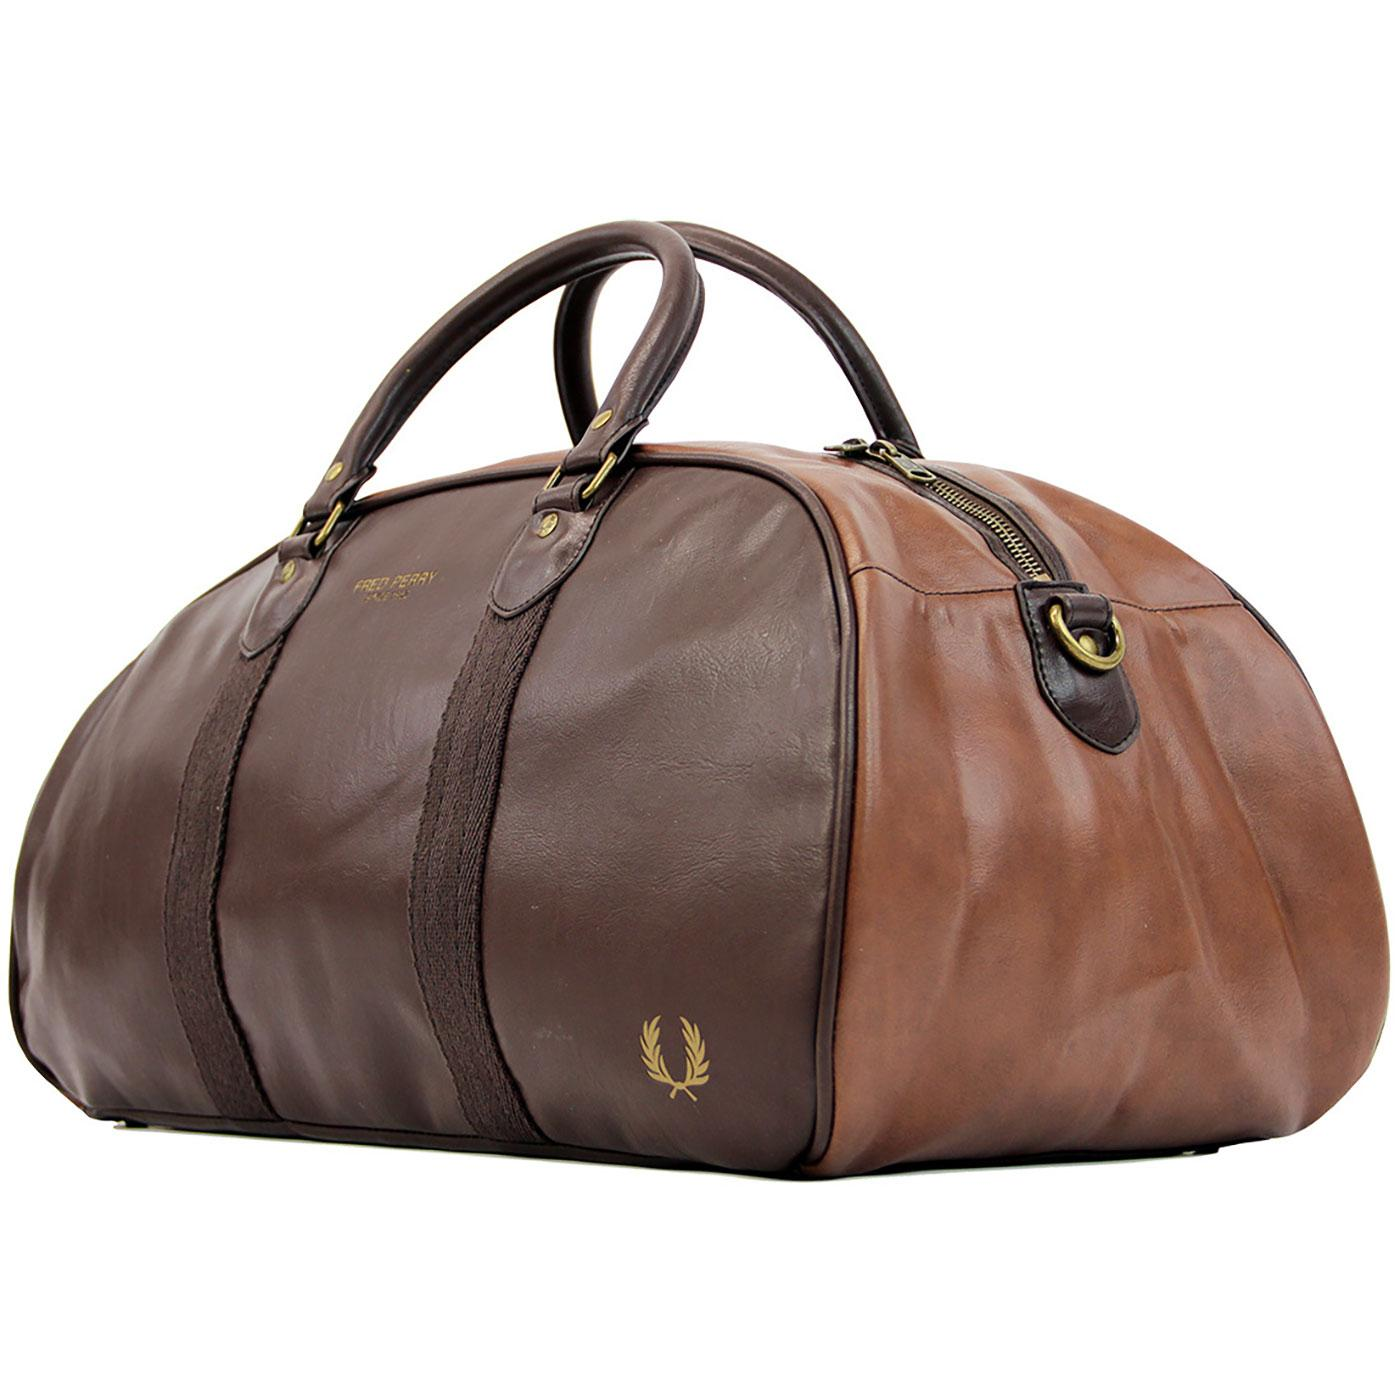 FRED PERRY Retro Authentic Grip Weekend Bag TAN